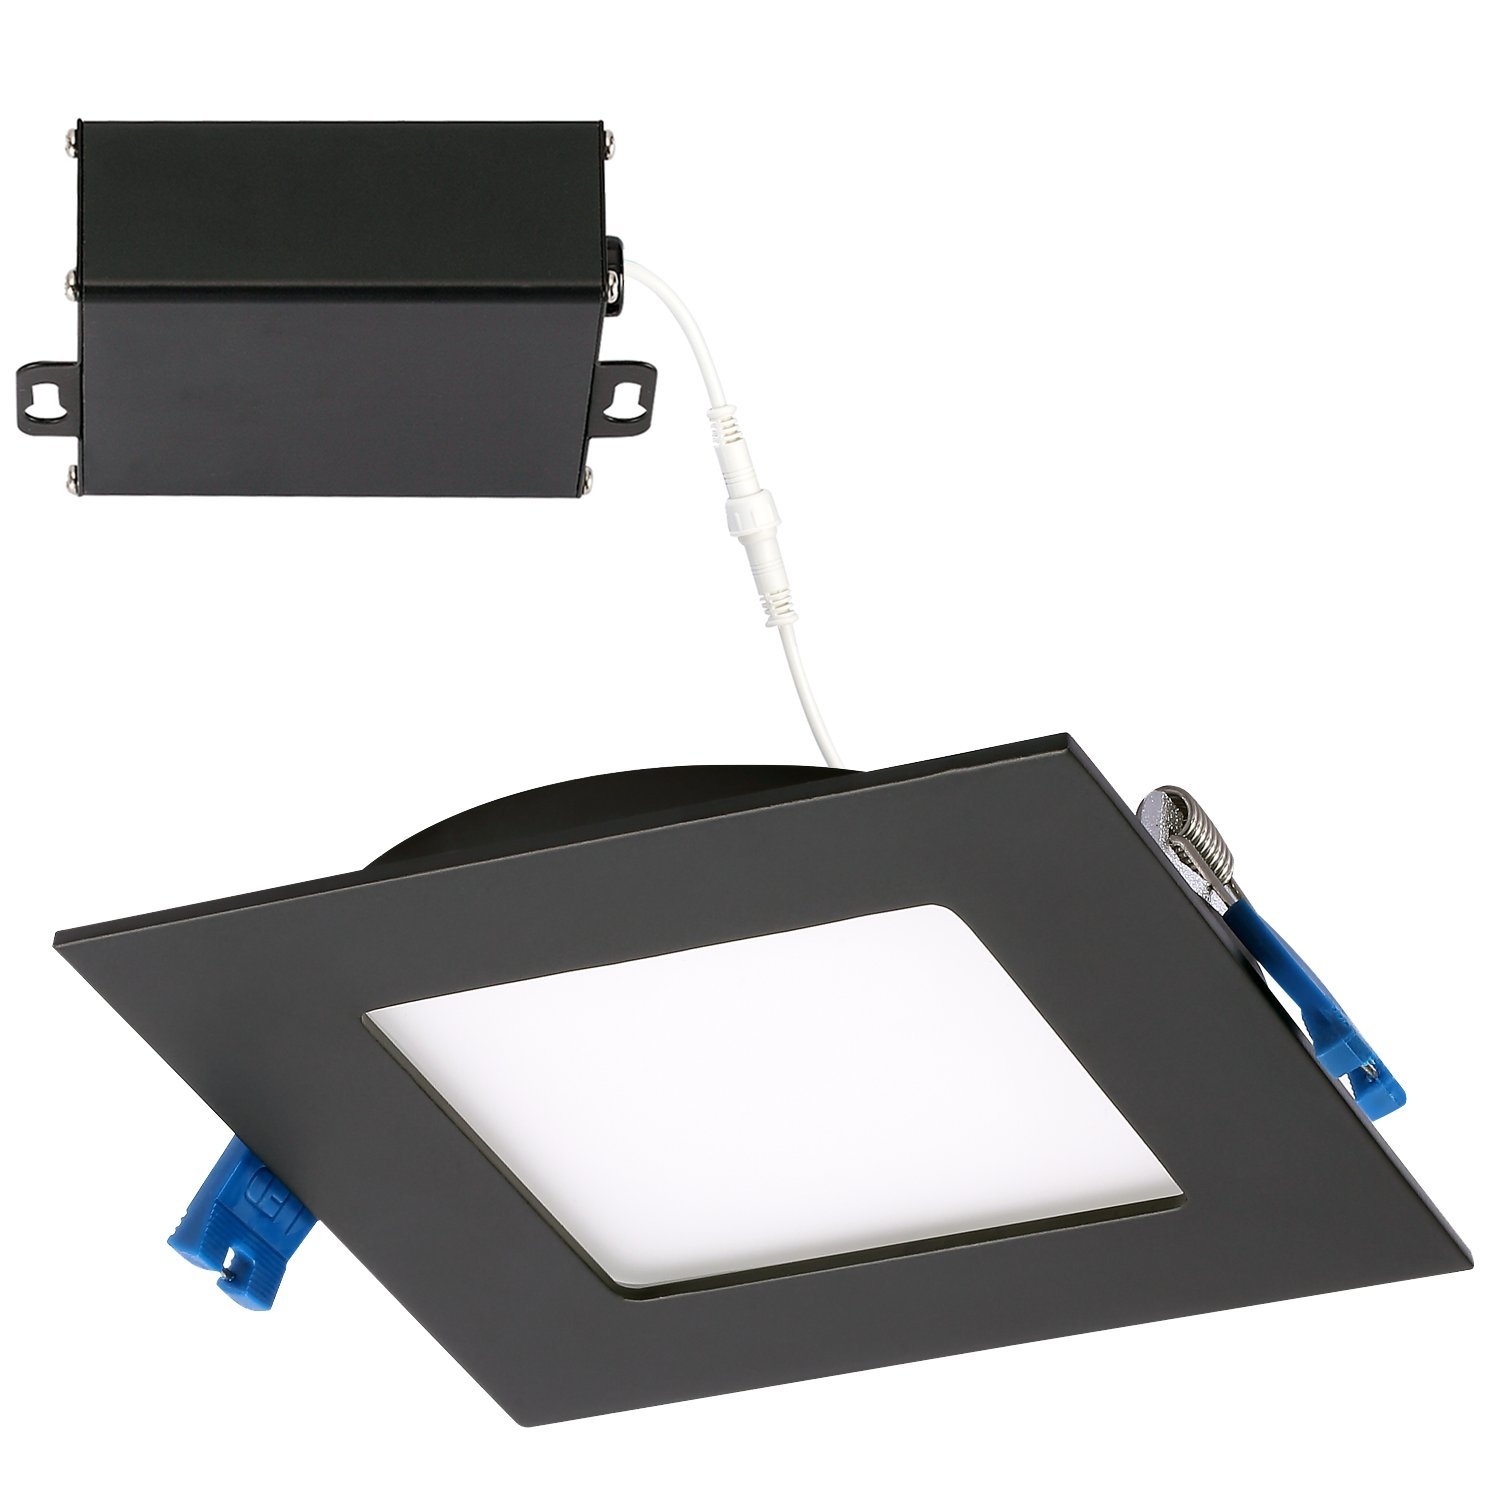 GetInLight Slim Dimmable 4 Inch LED Recessed Lighting, Square Ceiling Panel, Junction Box Included, 4000K(Bright White), 9W, 600lm, Black Finished, cETLus Listed, IN-0308-1-BK-40